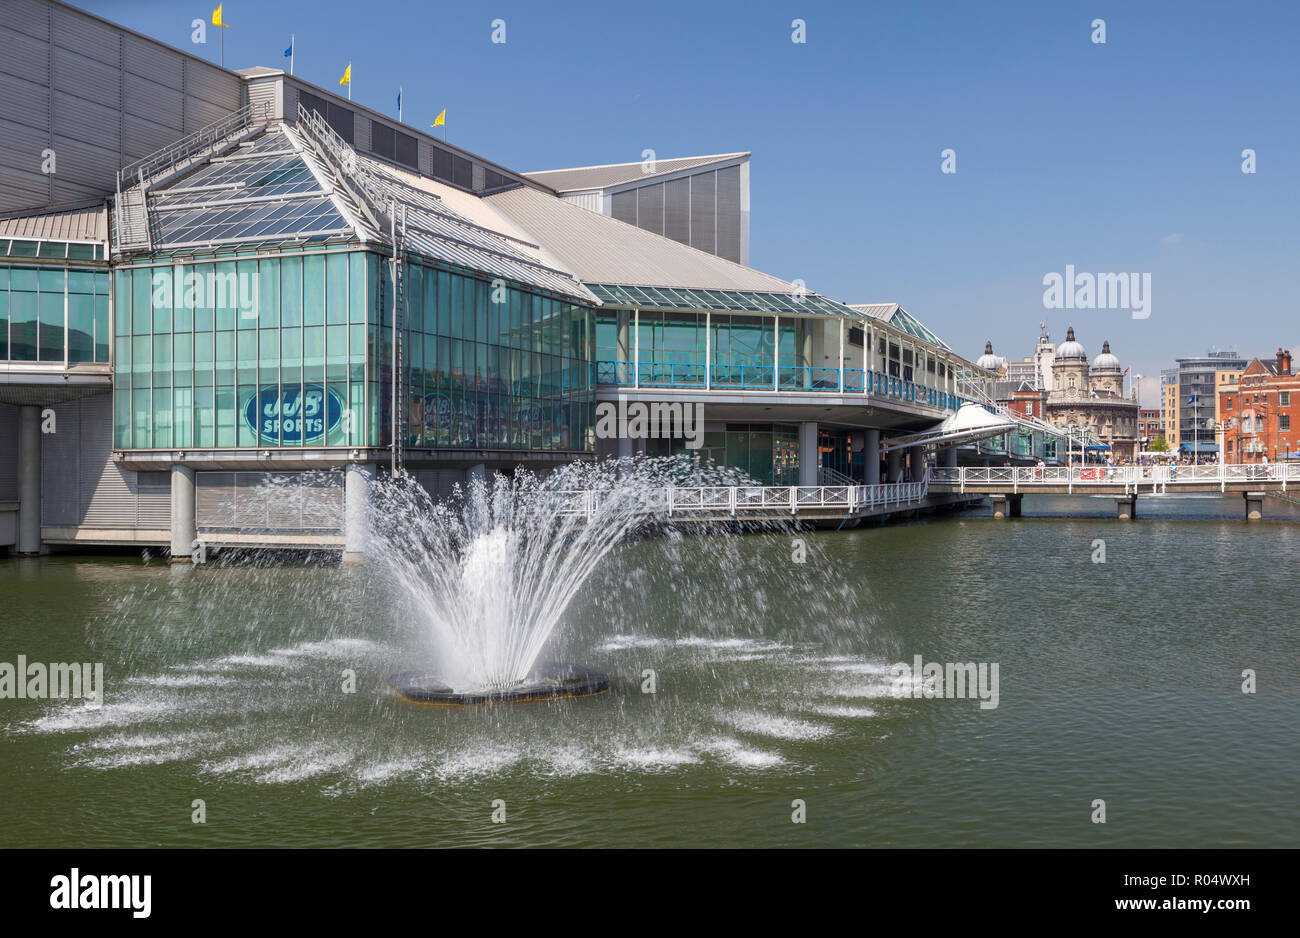 Princes Quay shopping centre - built on piles in the historic Princes Dock in Hull, Humberside, East Yorkshire - Stock Image